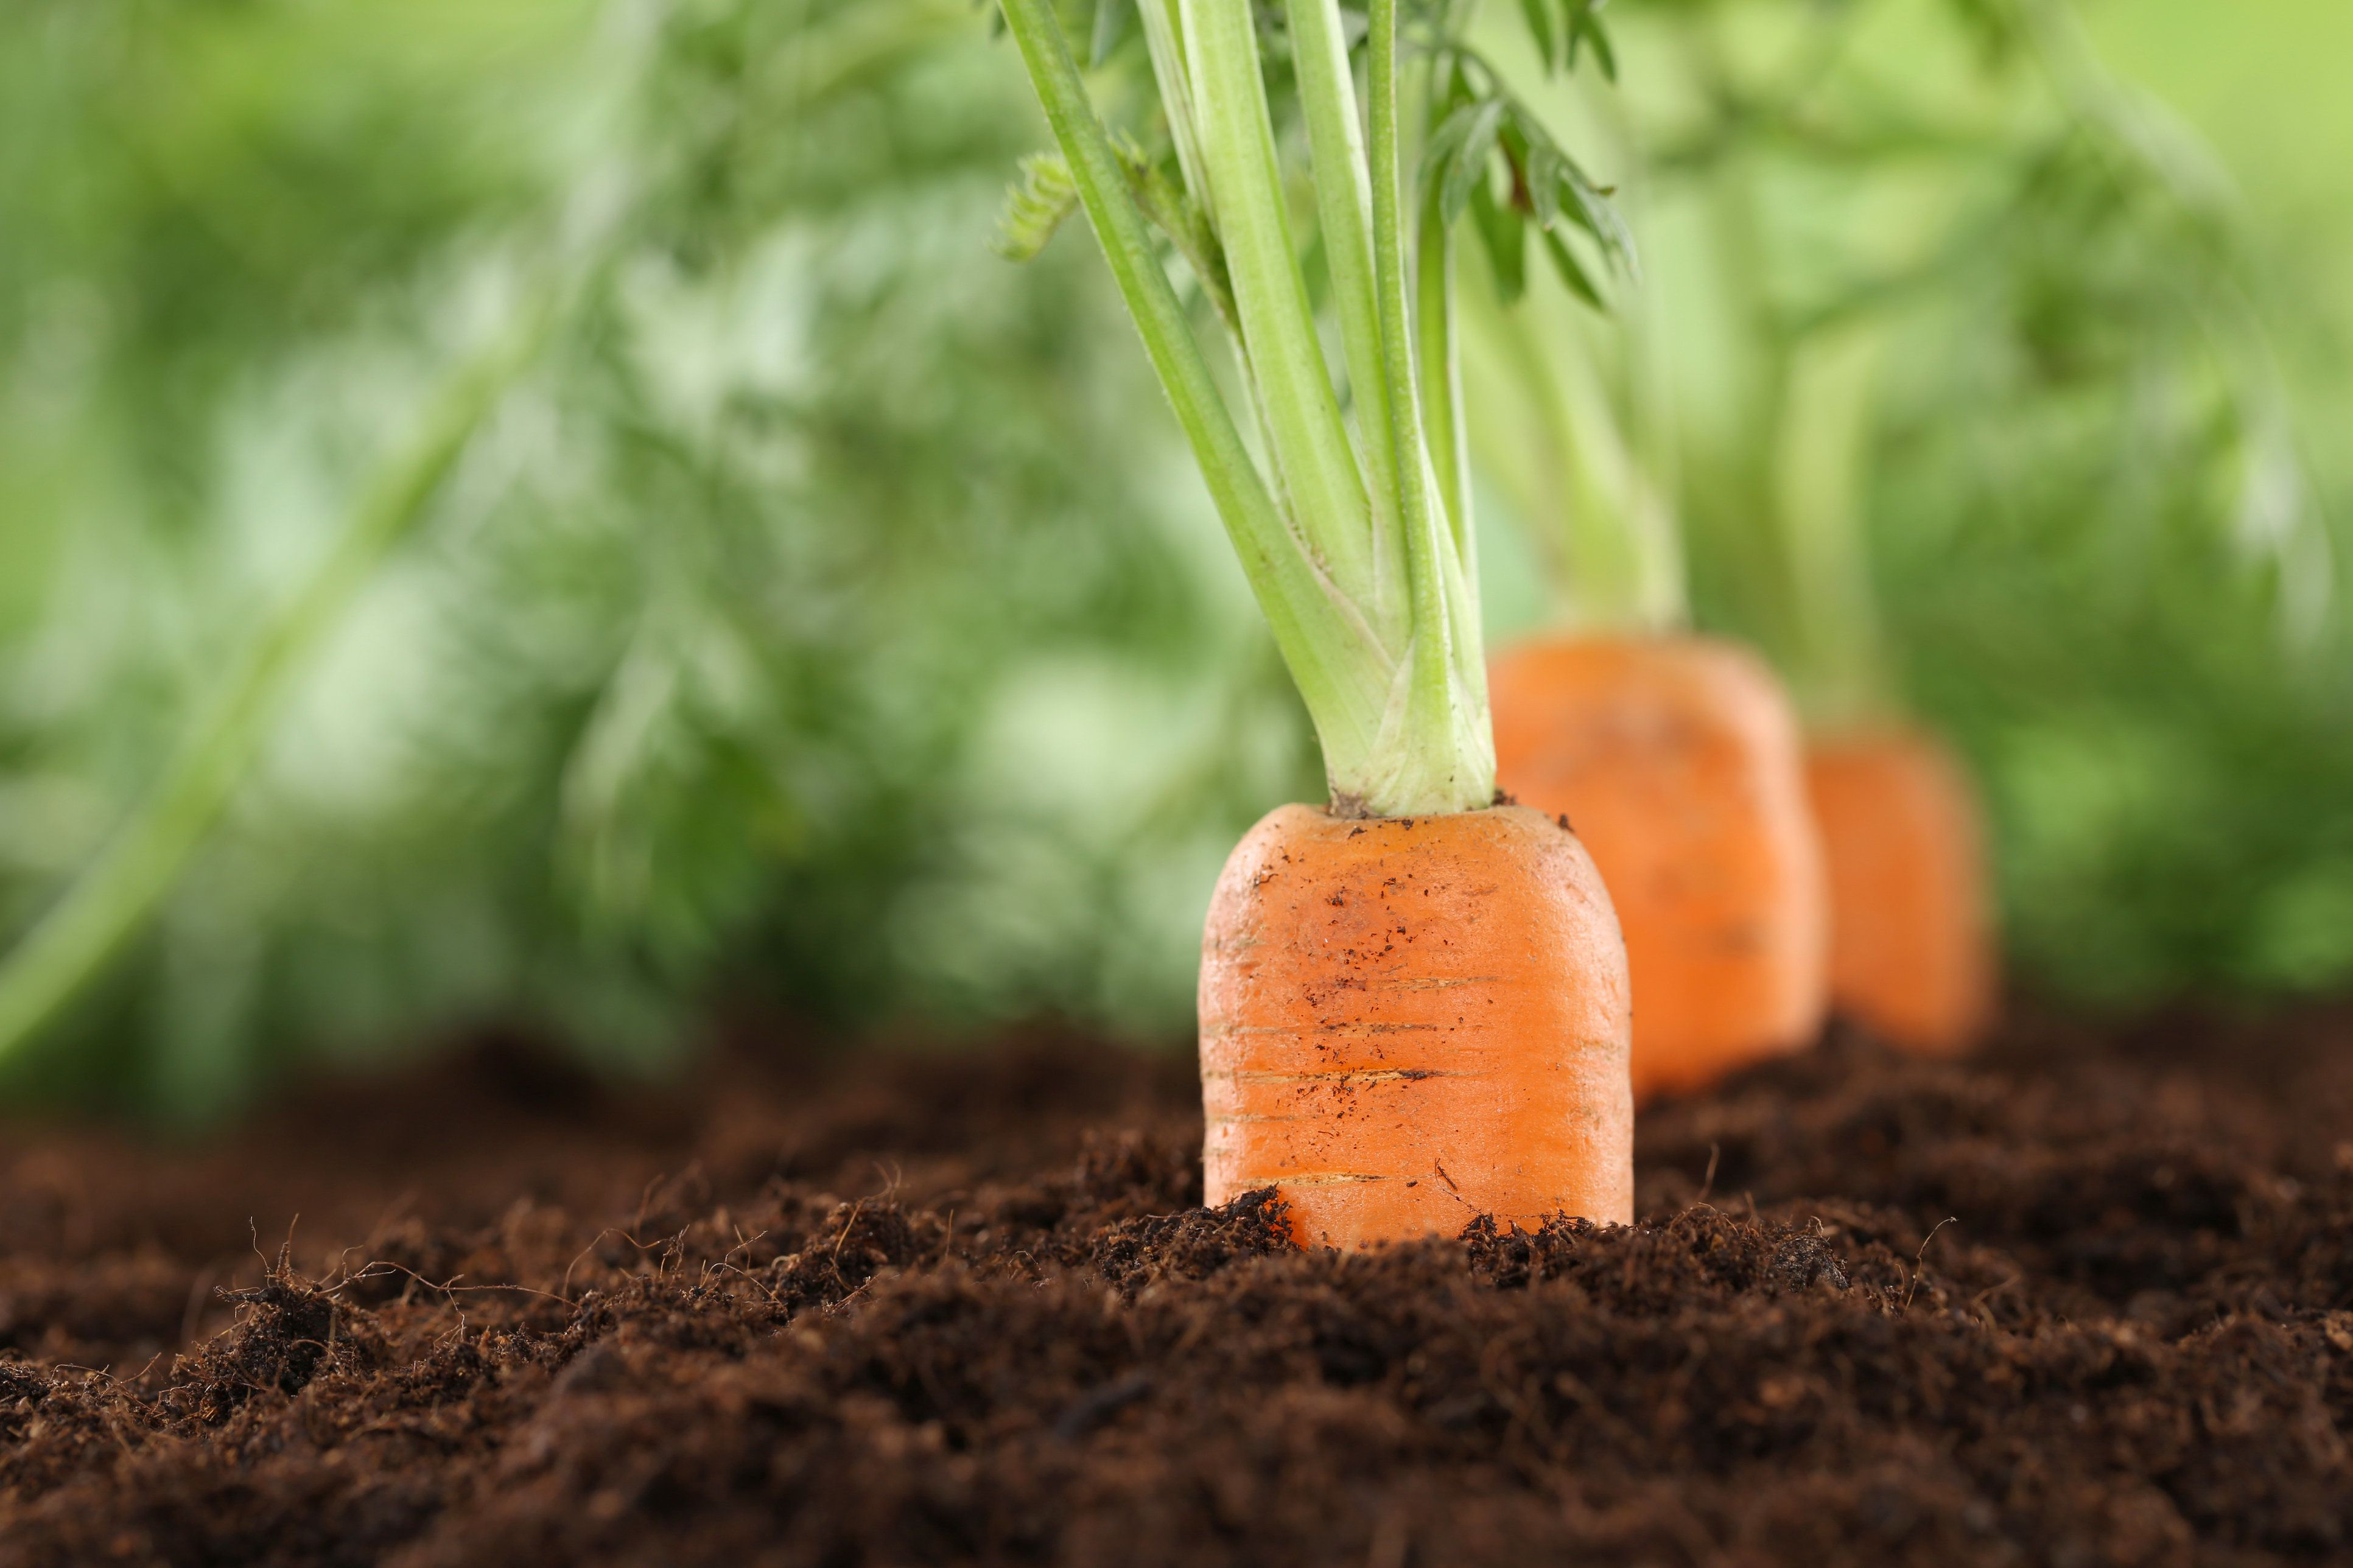 Healthy eating ripe carrots in vegetable garden in nature